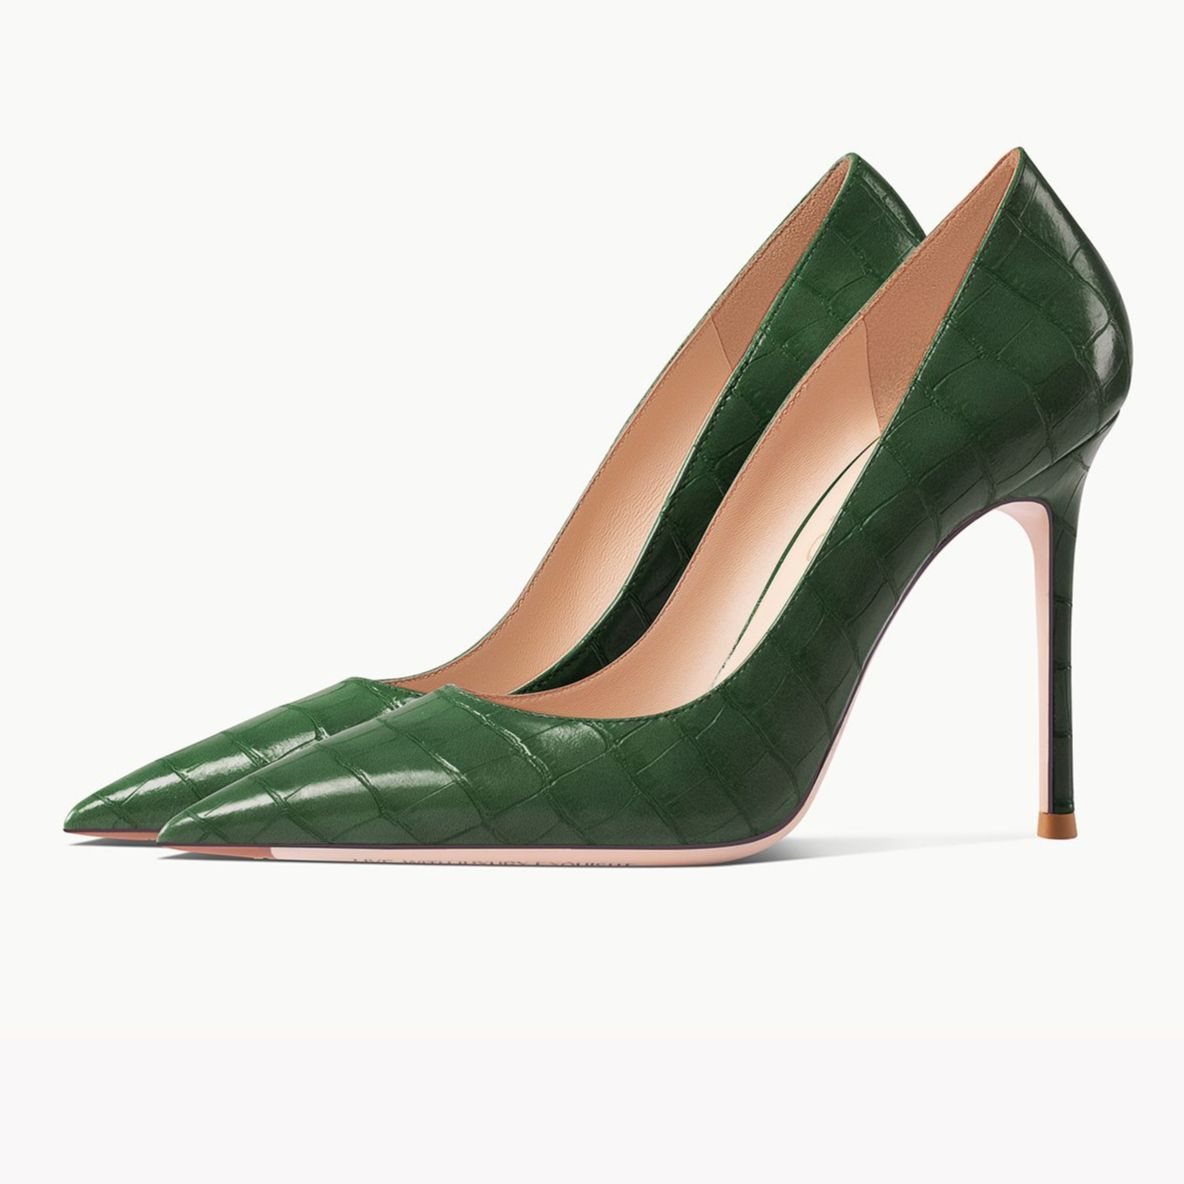 Real Leather Crocodile Pattern 2021 New For Women Pumps Brand Black High Heels Pointed Toe Sexy Stil